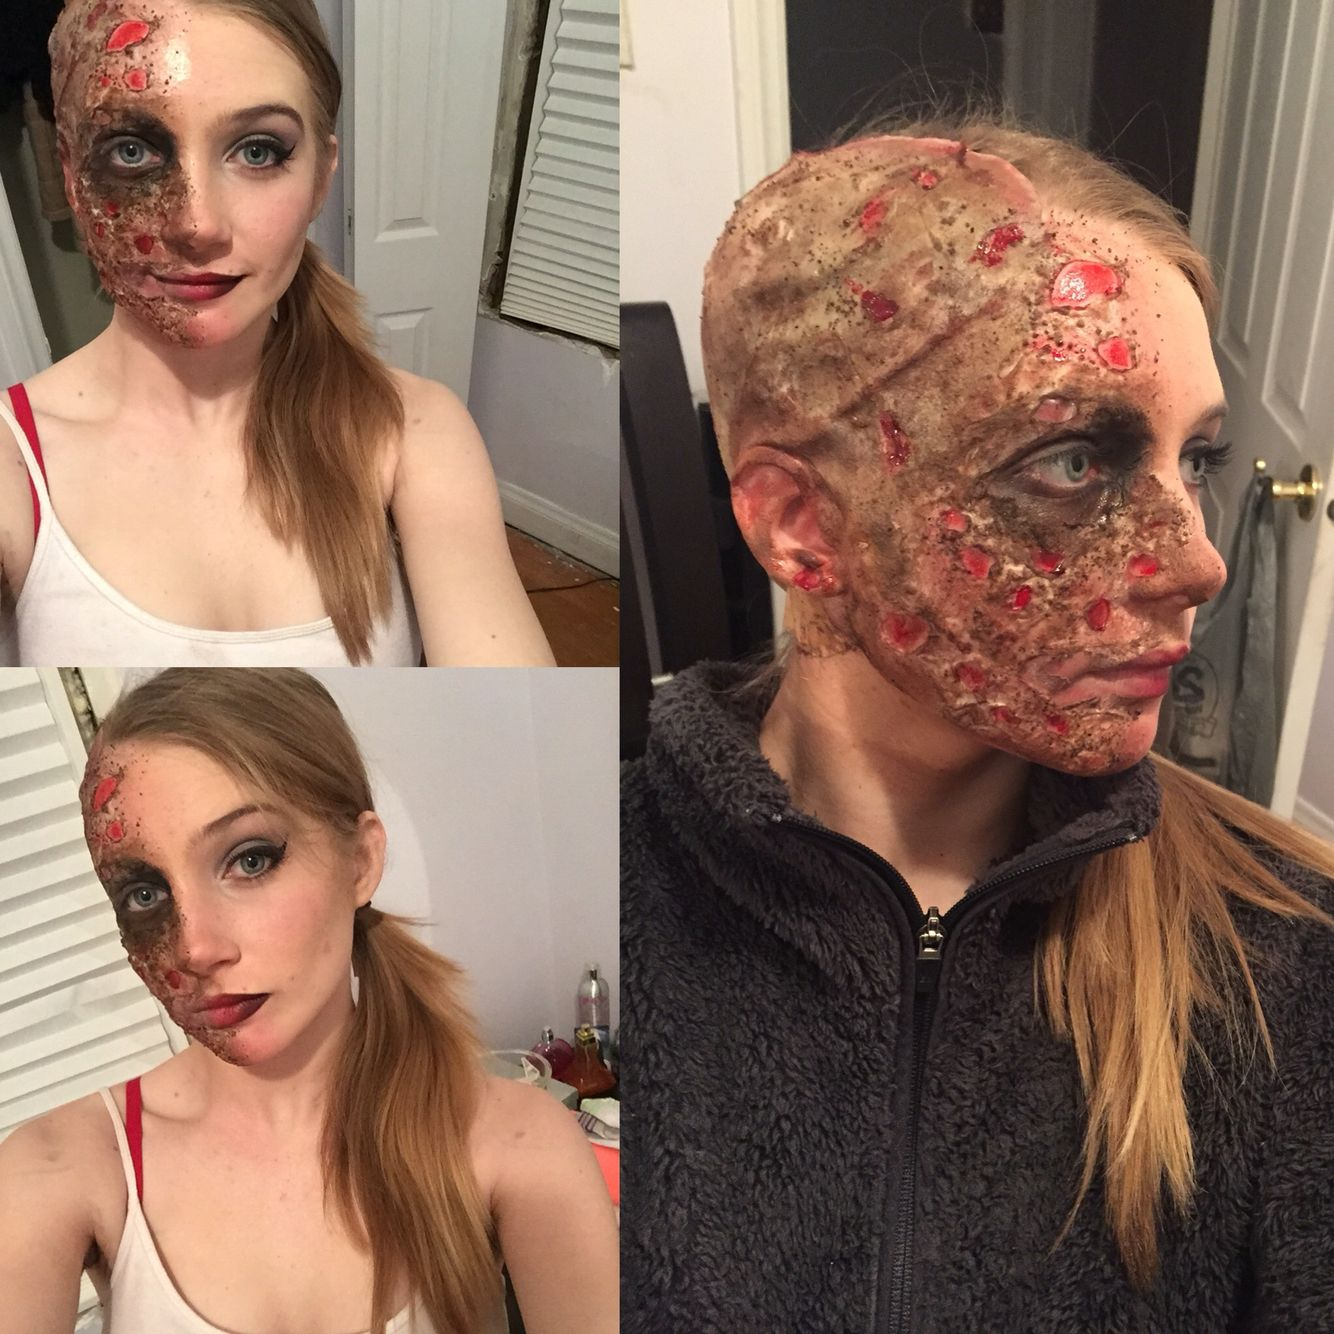 Burn Look Two Face I Did Using Coffee Grounds Liquid Latex And Cotton Burn Makeup Twoface Batman Harveydent Sfx Latex Halloween Costume Gory